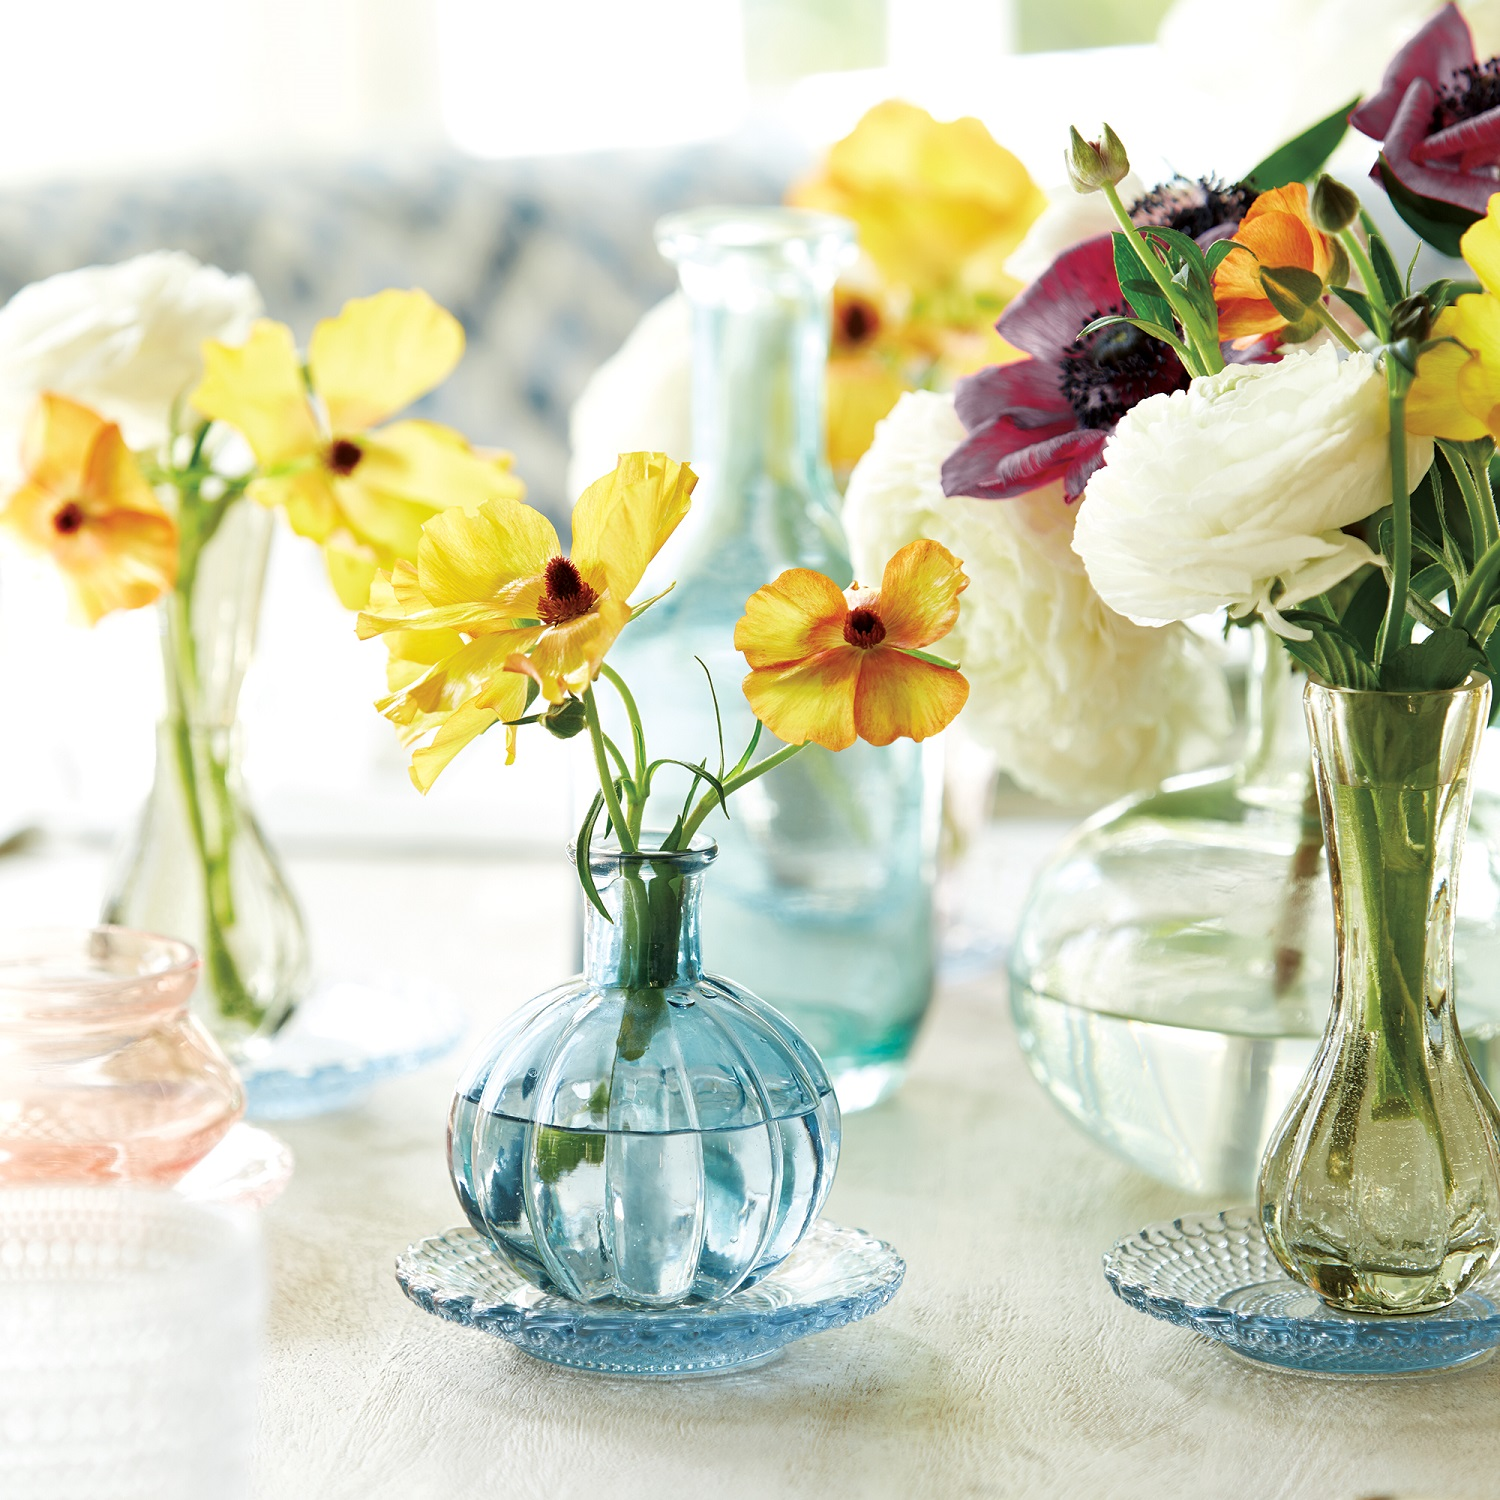 Getting rid of what you no longer use (decluttering), gives you space for something new and pretty, like flowers. Shown: Melissa bud vases from Ballard Designs.